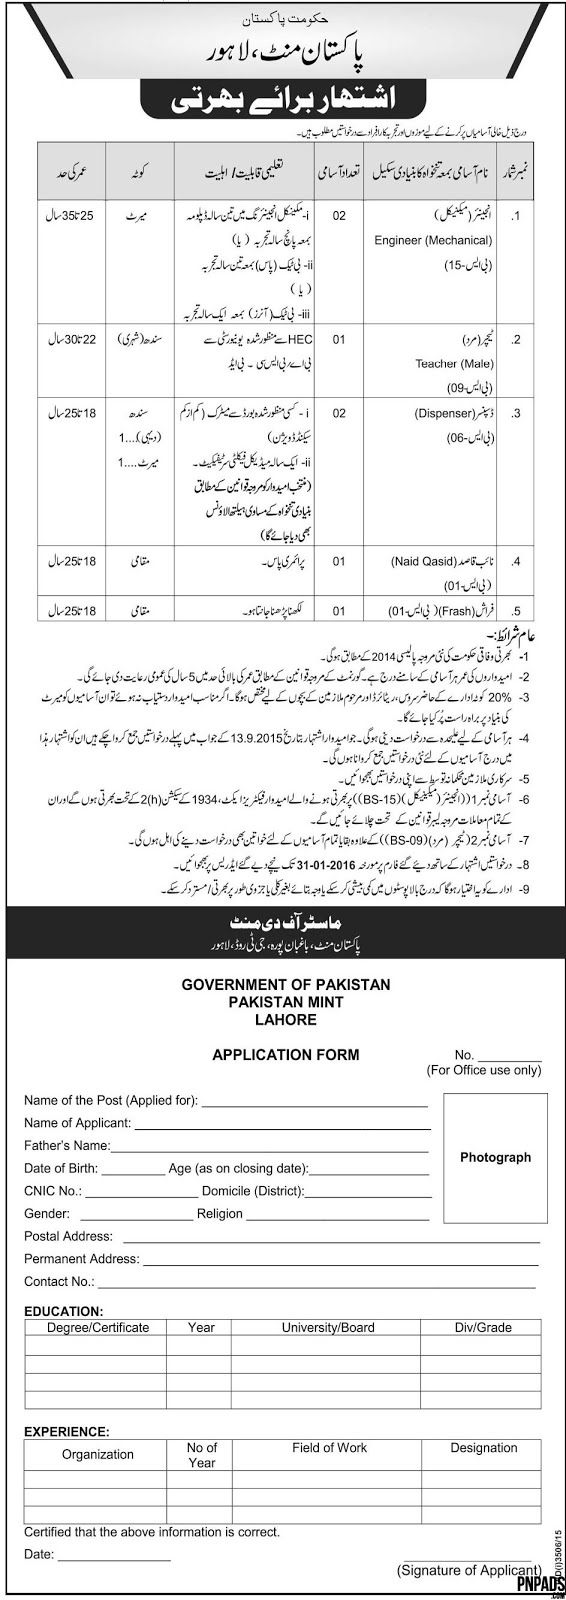 Pakistan MINT Government of Pakistan Lahore JOBS 2016 - Jobs in Pakistan, Karachi, Lahore, Rawalpindi, Islamabad, Peshawar; published in Jang, Express